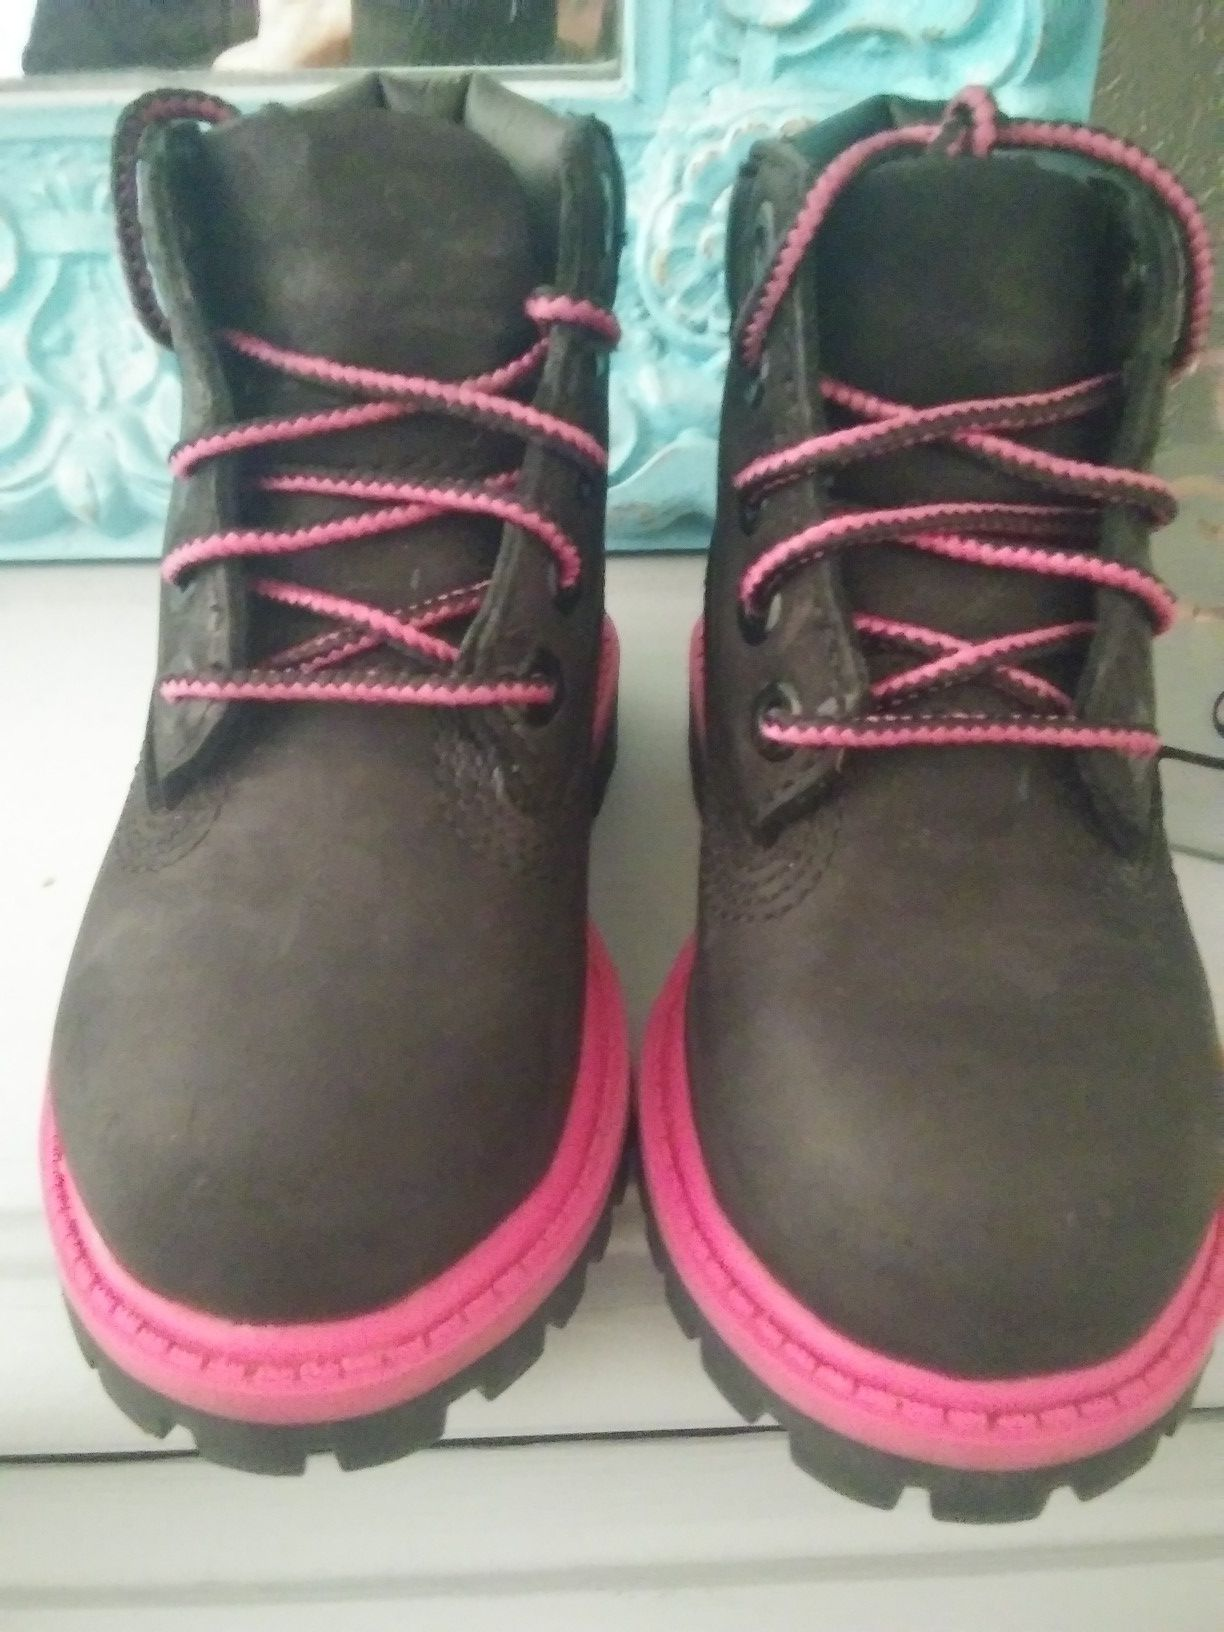 Timberland lil girl boots size 6